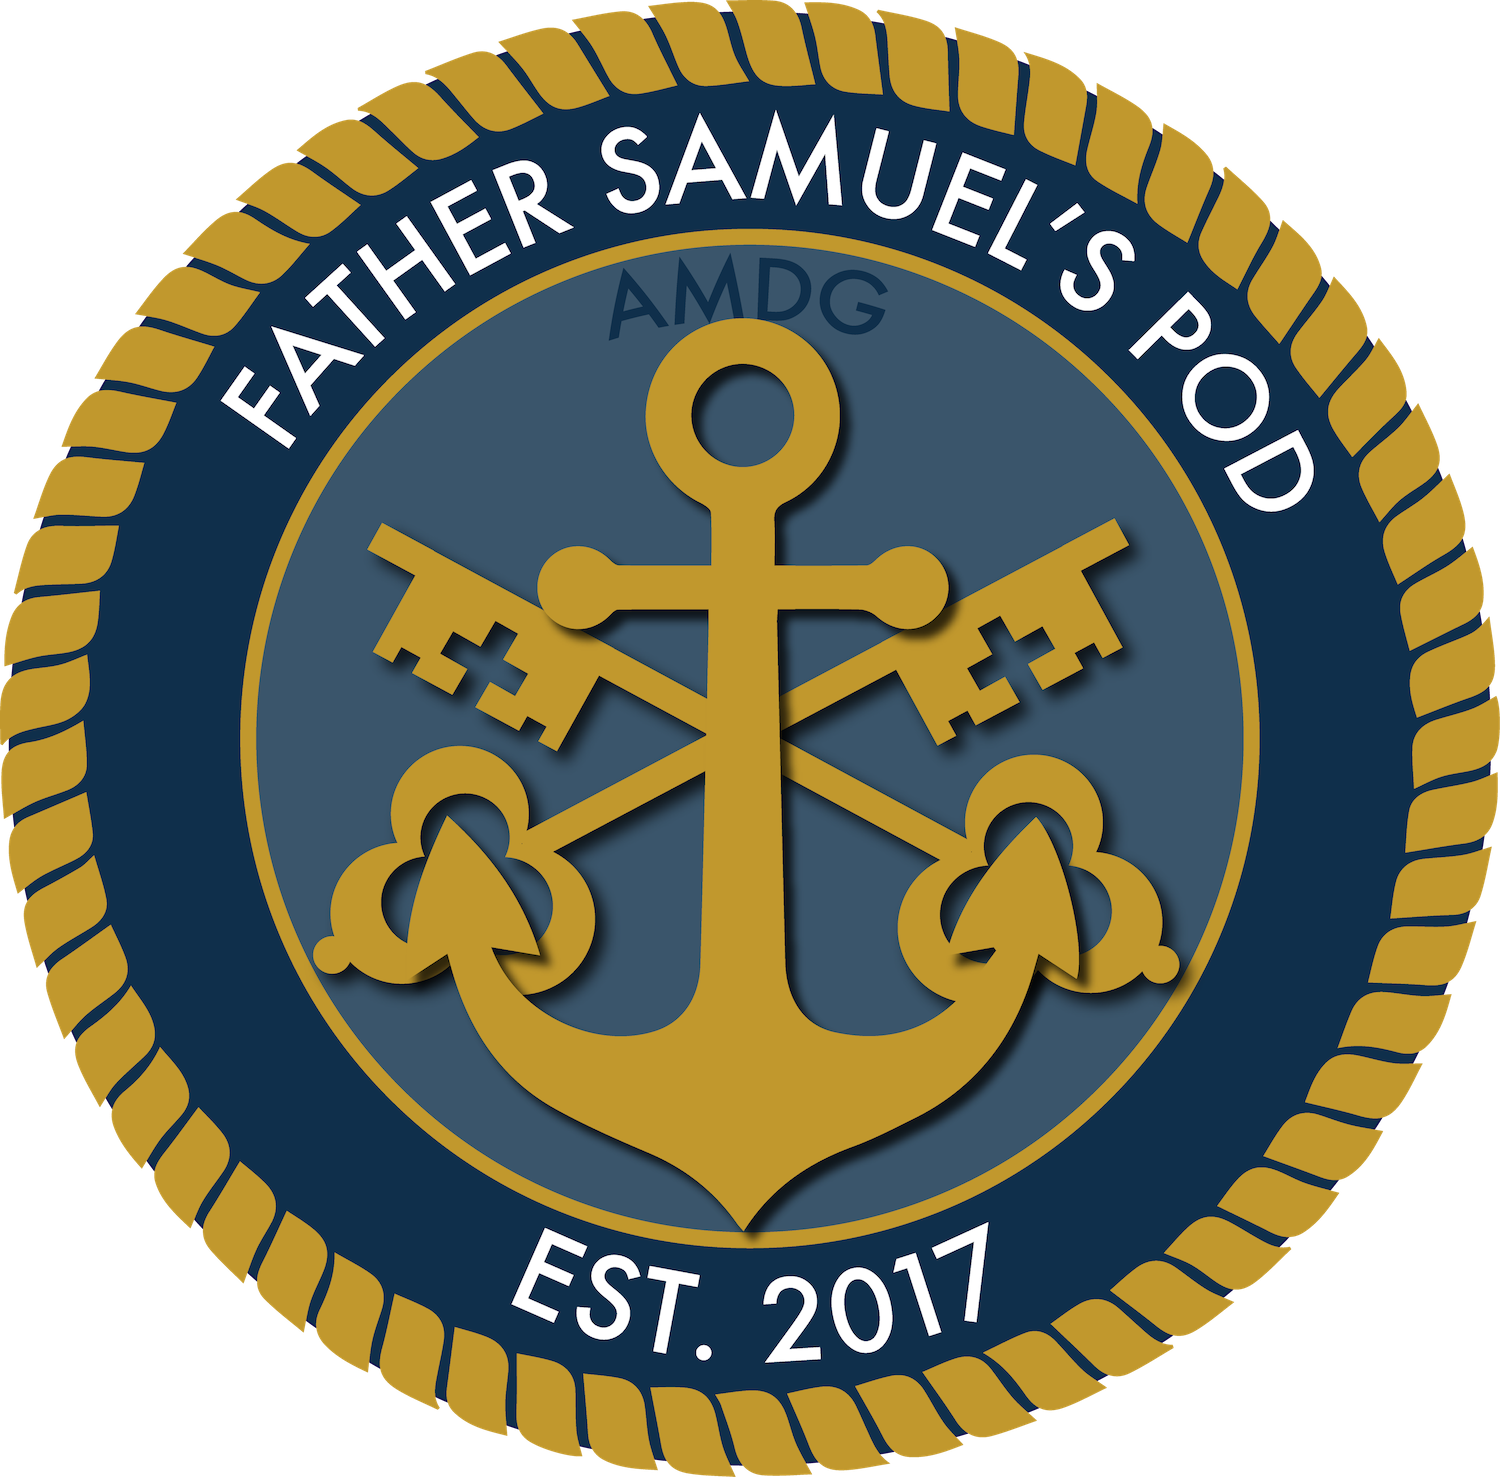 Father Samuel's Pod Logo